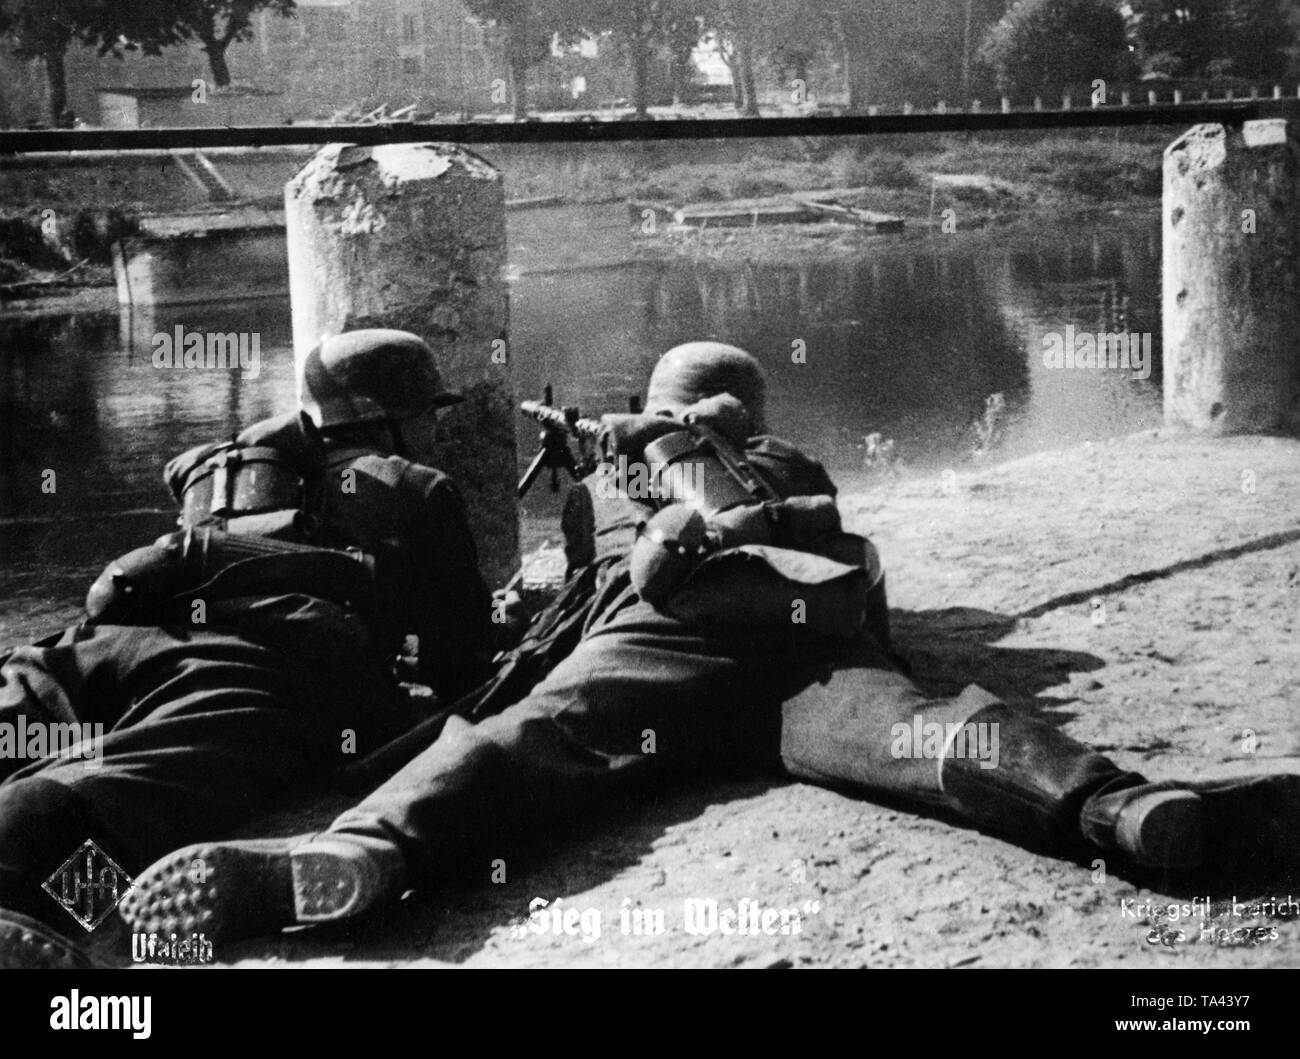 Two German infantrymen with an Mg-34 during the French campaign. Moviestill from Sieg im Westen (Victory in the West). Stock Photo